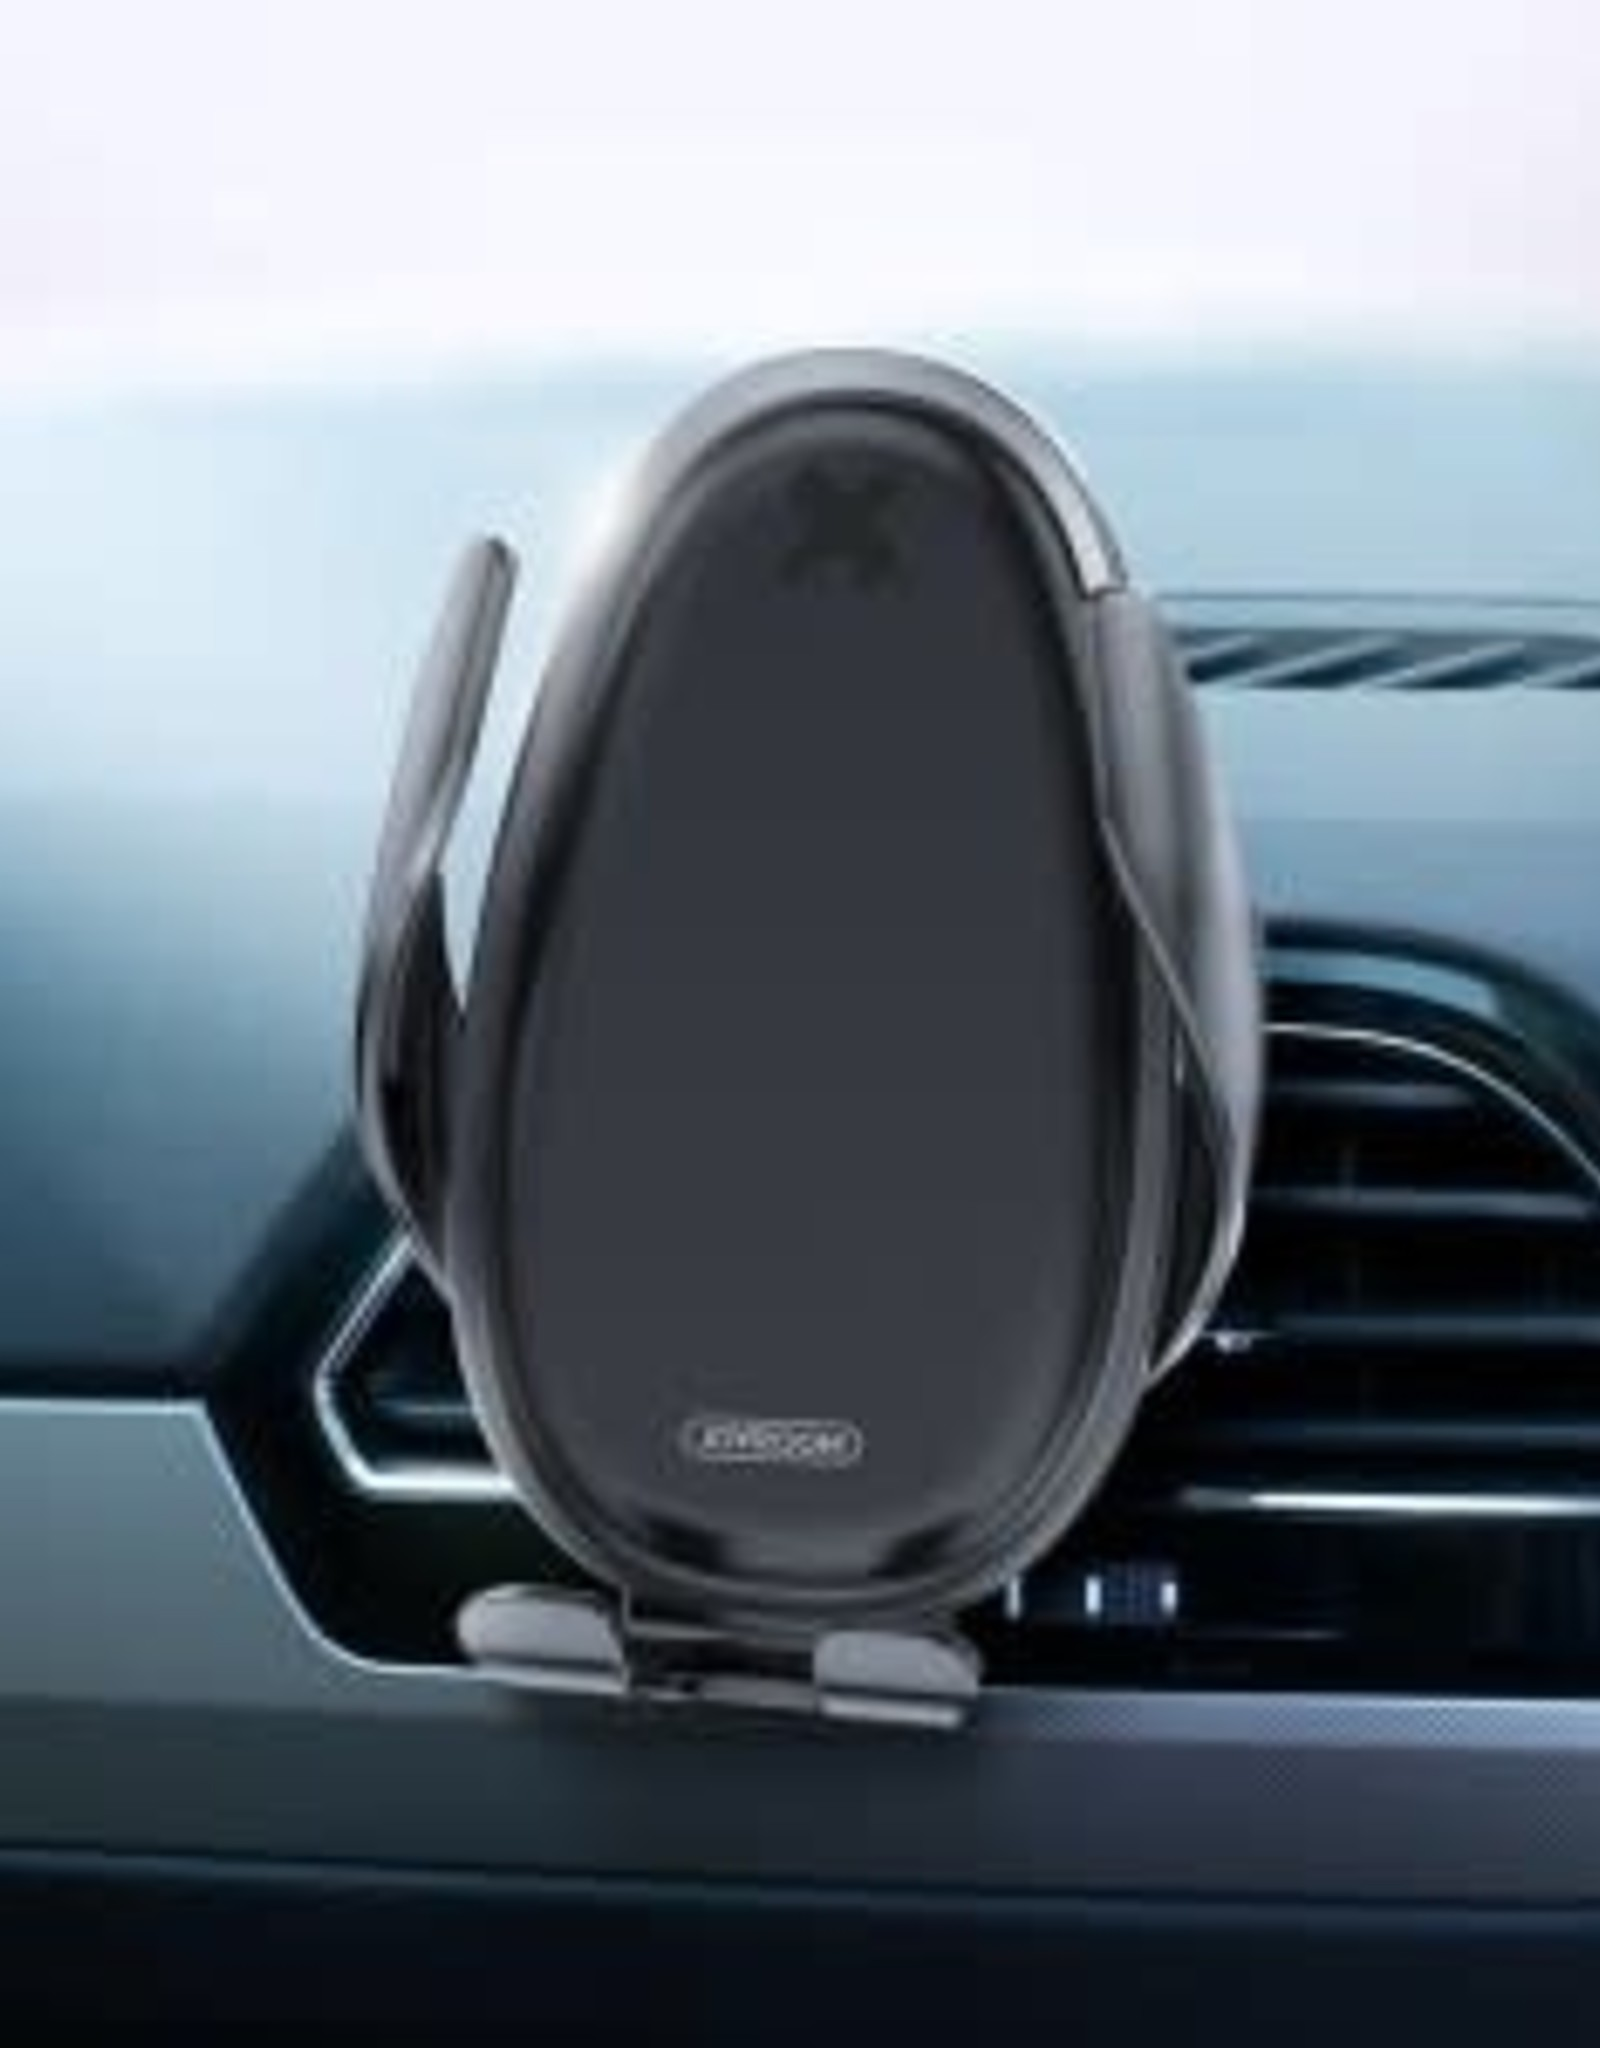 Joyroom Magnetic Car Air Vent 15W Wireless Charger